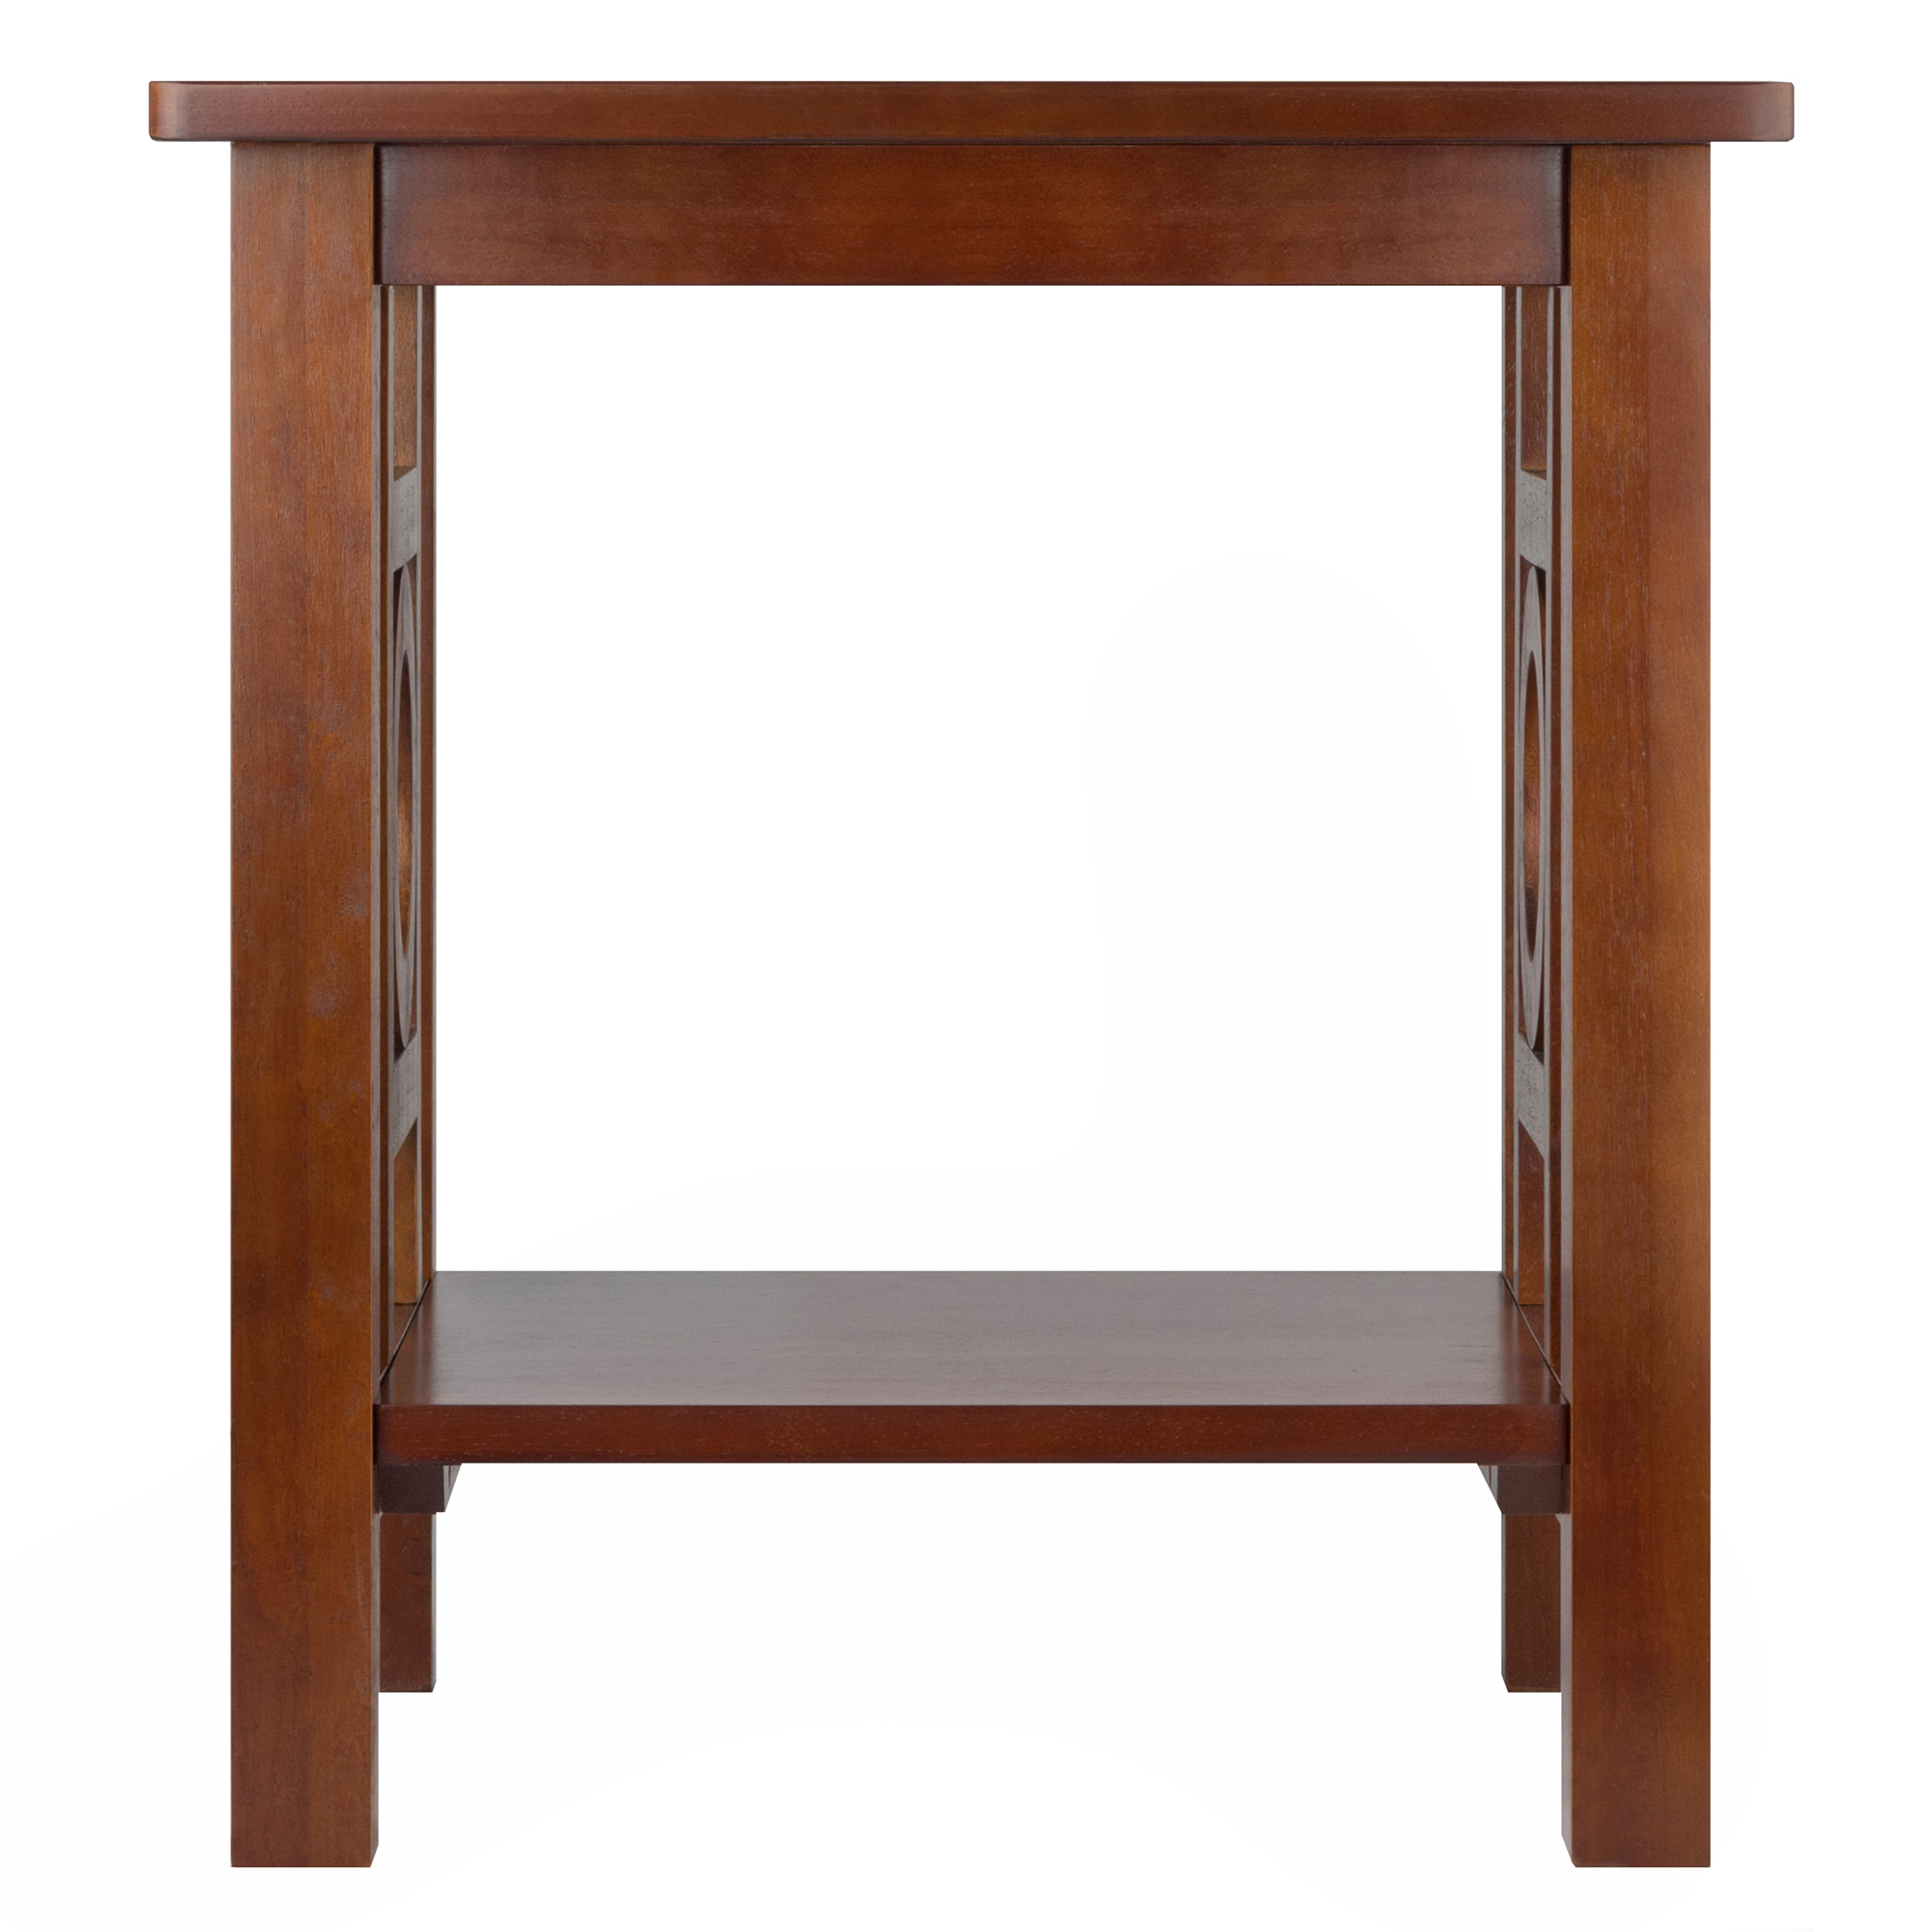 winsome wood ollie accent end table walnut finish home office furniture shelf nautical ikea patio nate berkus gold coffee console with drawers small contemporary farmhouse leaf